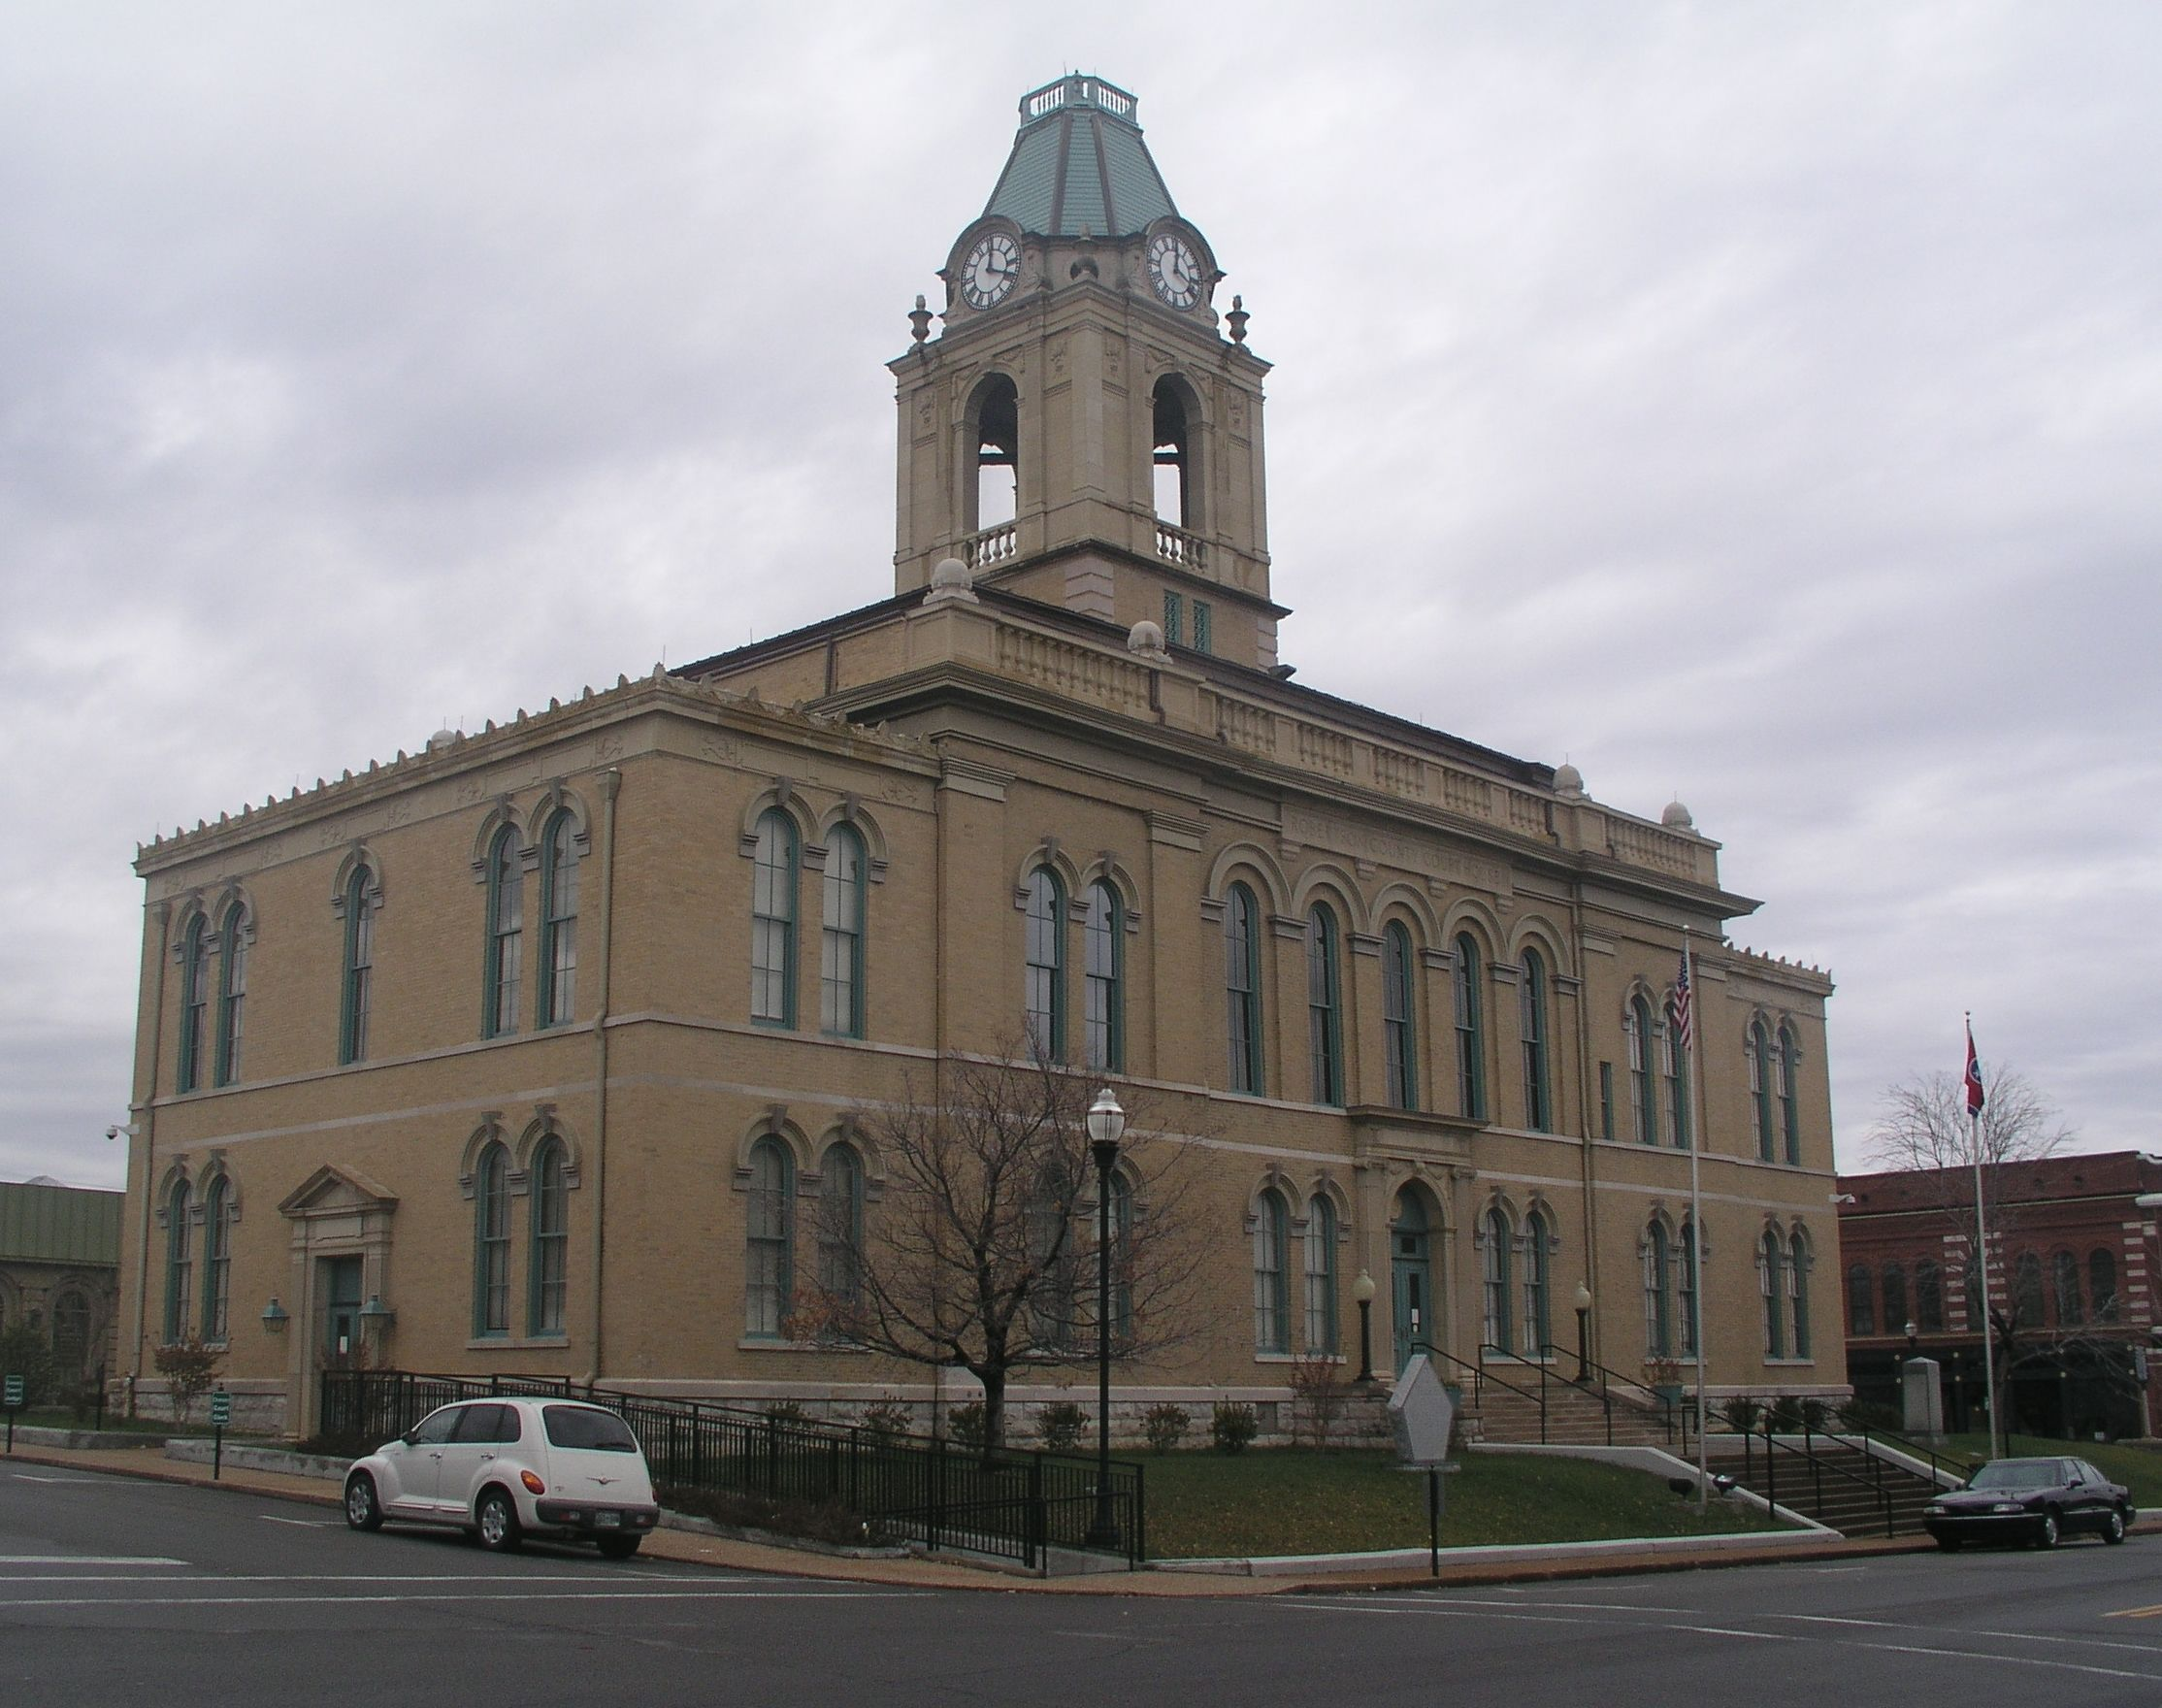 Tennessee robertson county springfield - Robertson County Courthouse In Springfield Tn